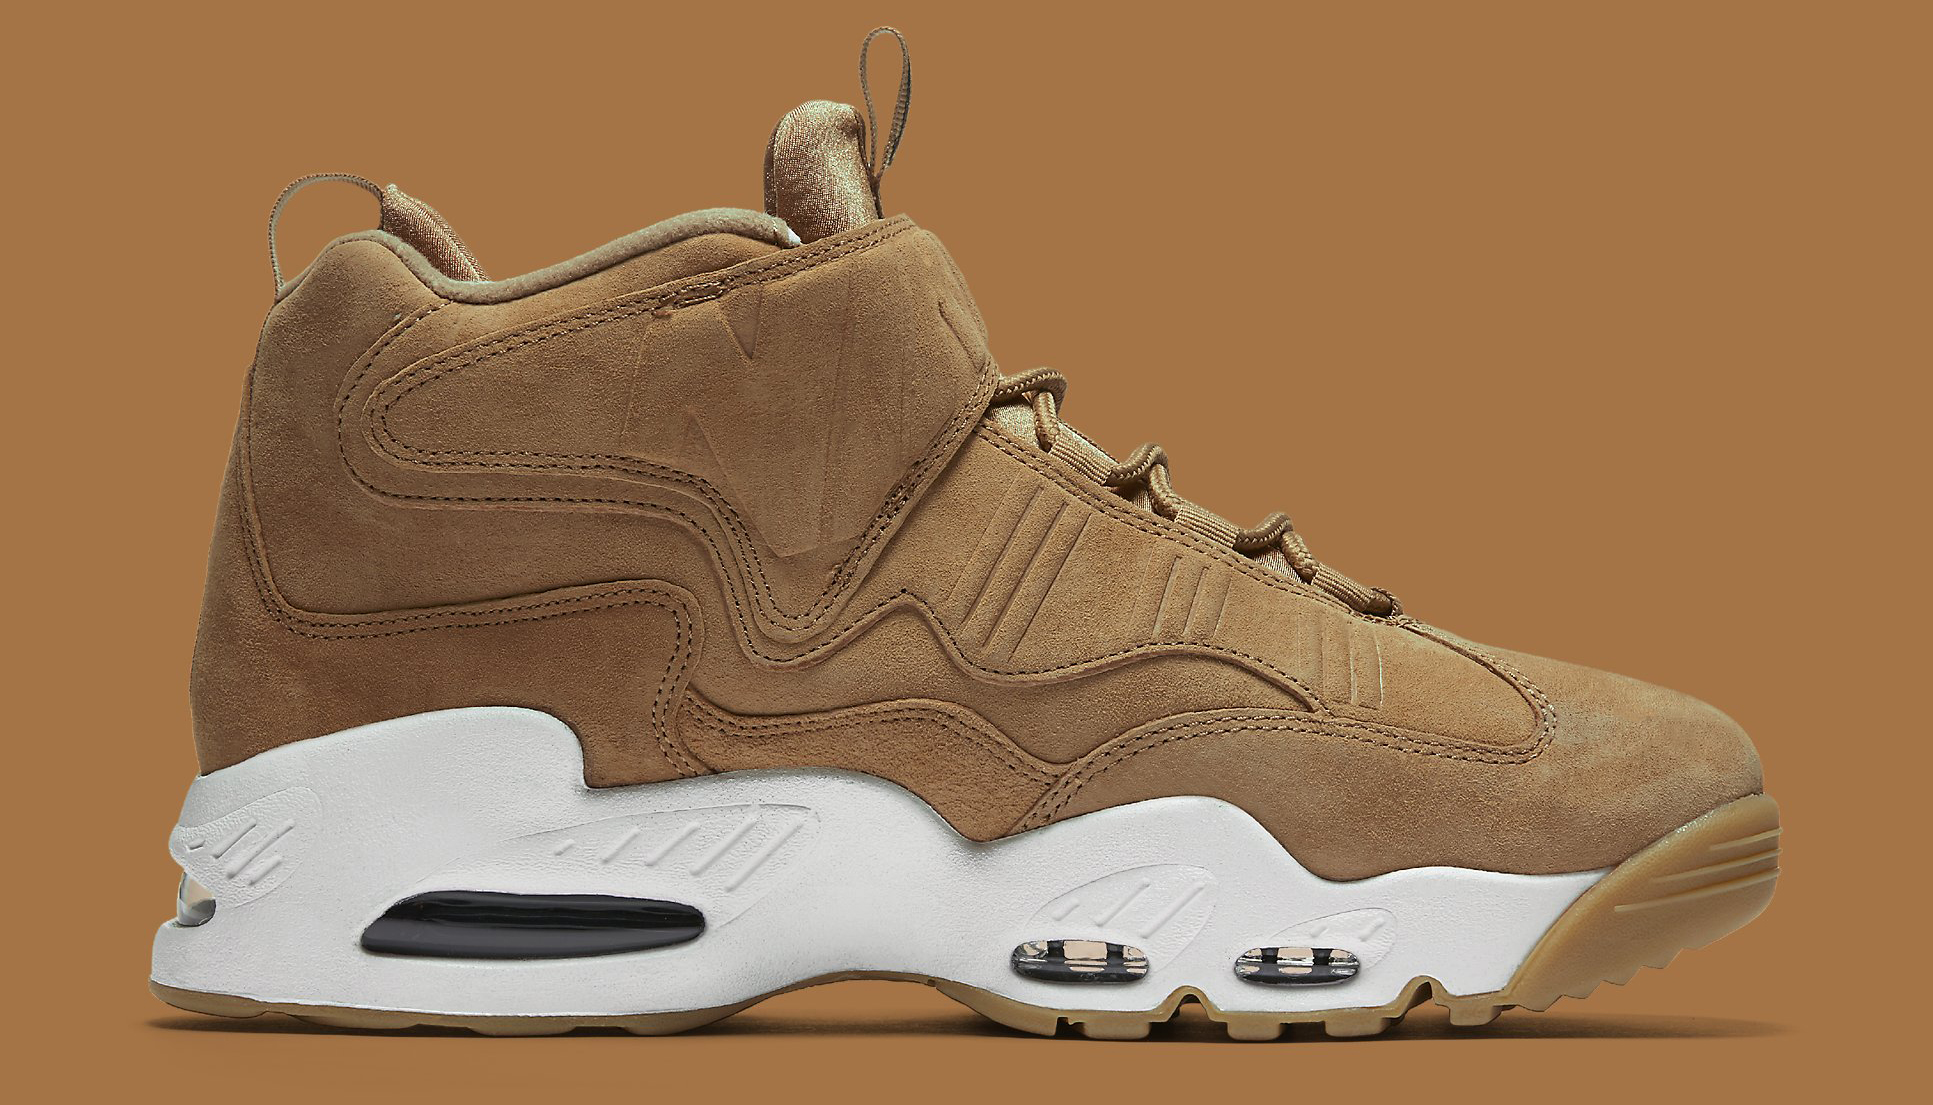 Wheat Nike Air Griffey Max 1 354912 200 | Sole Collector